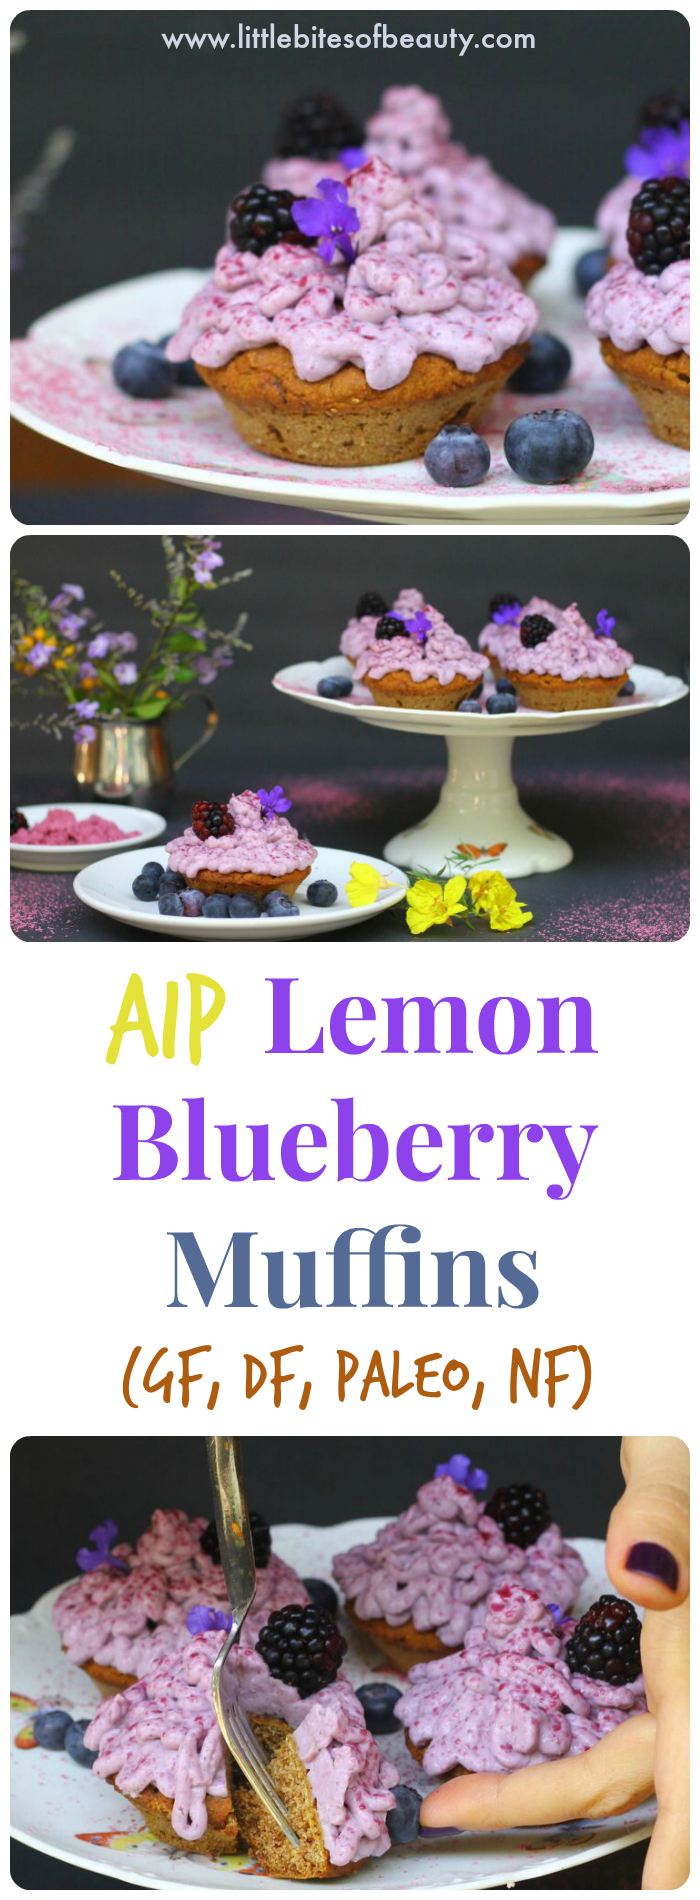 AIP Lemon Blueberry Muffins (GF, DF, Paleo, NF)